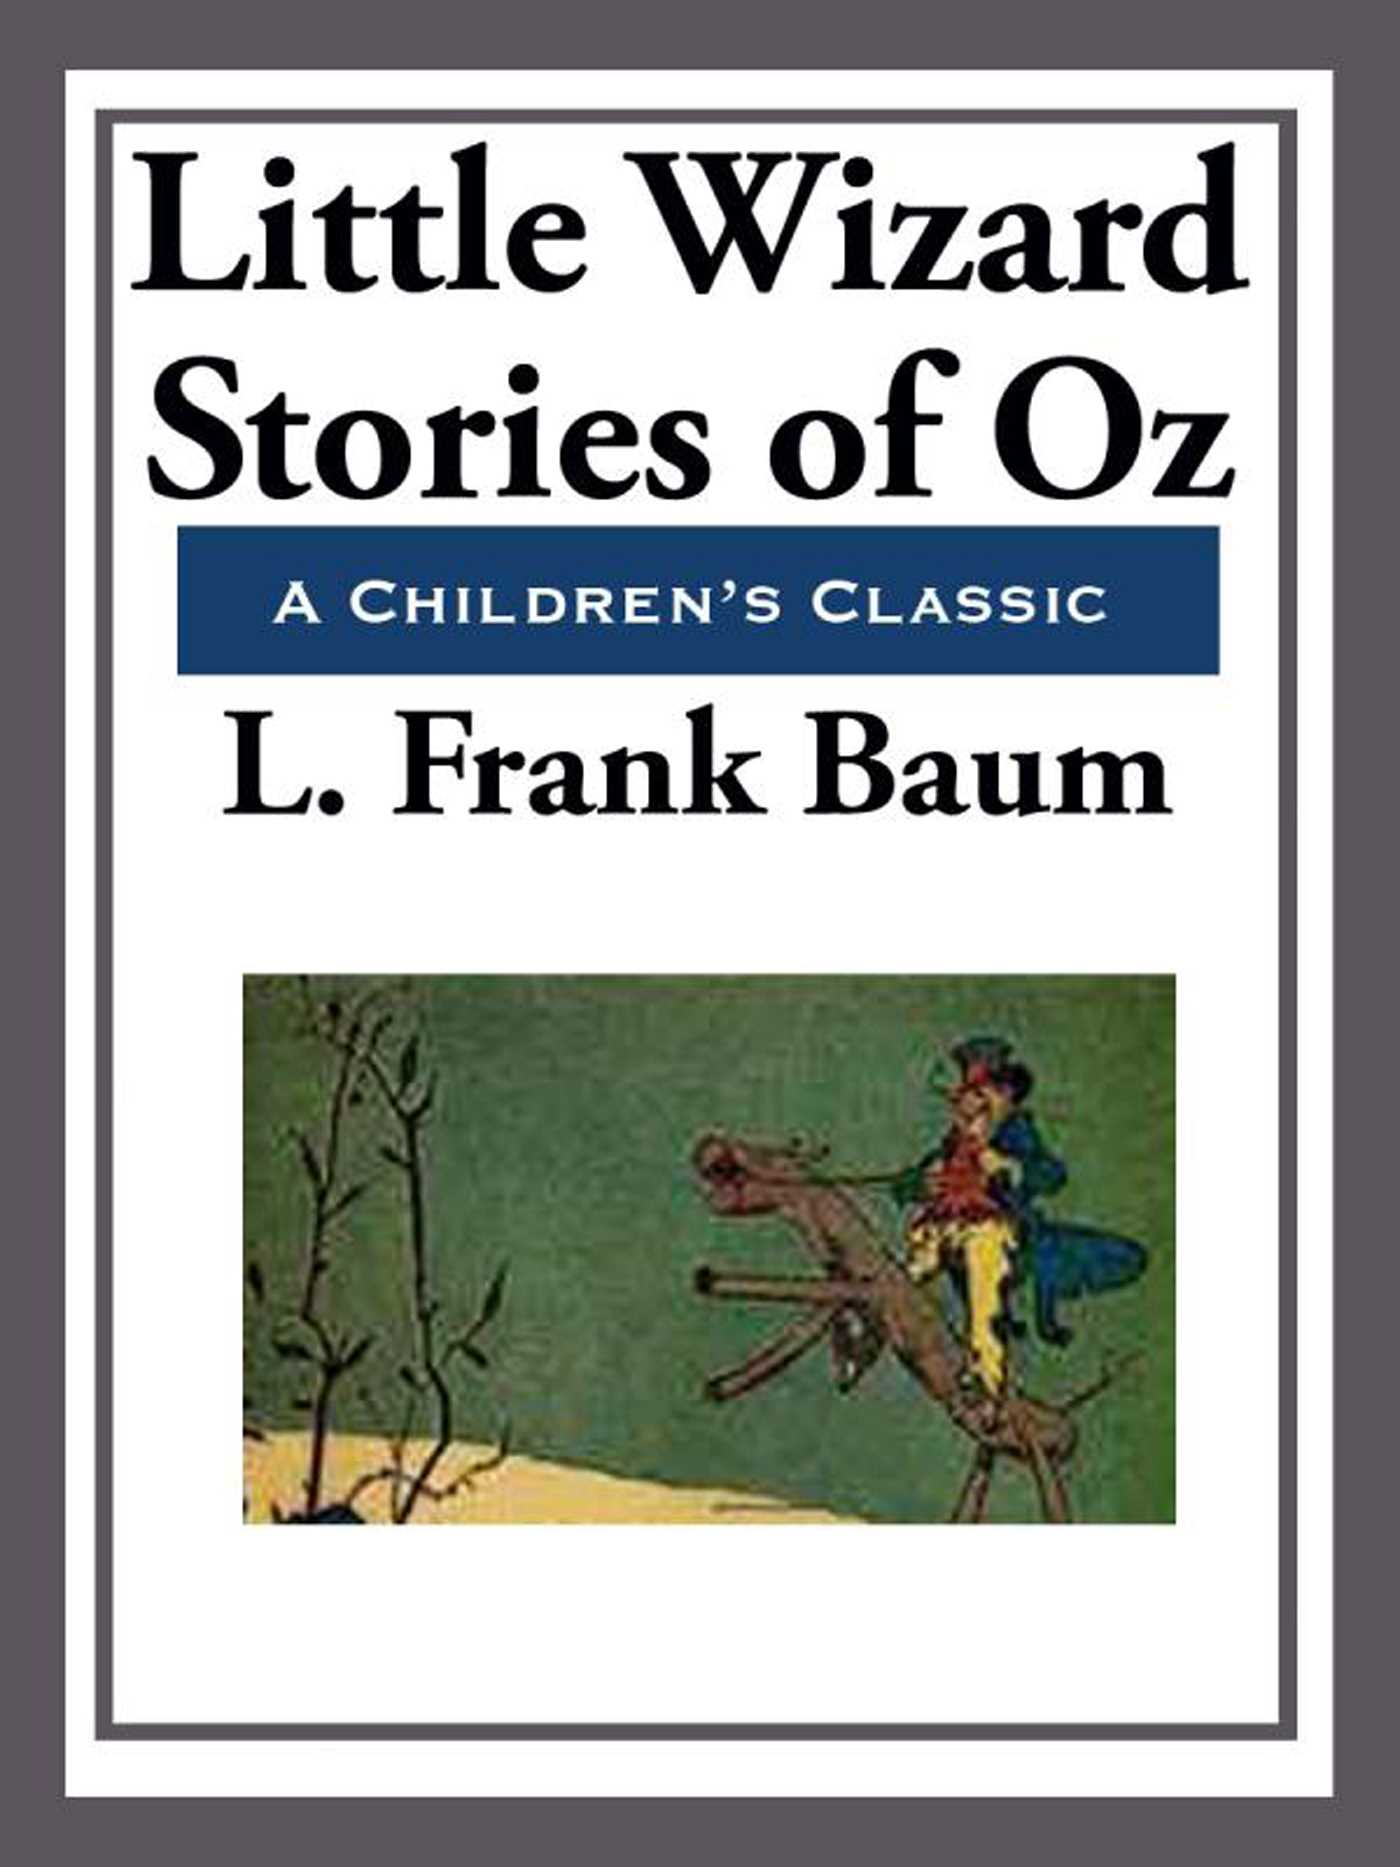 Wizard hd manual ebook little wizard stories of oz 9781625588081 hr fandeluxe Image collections